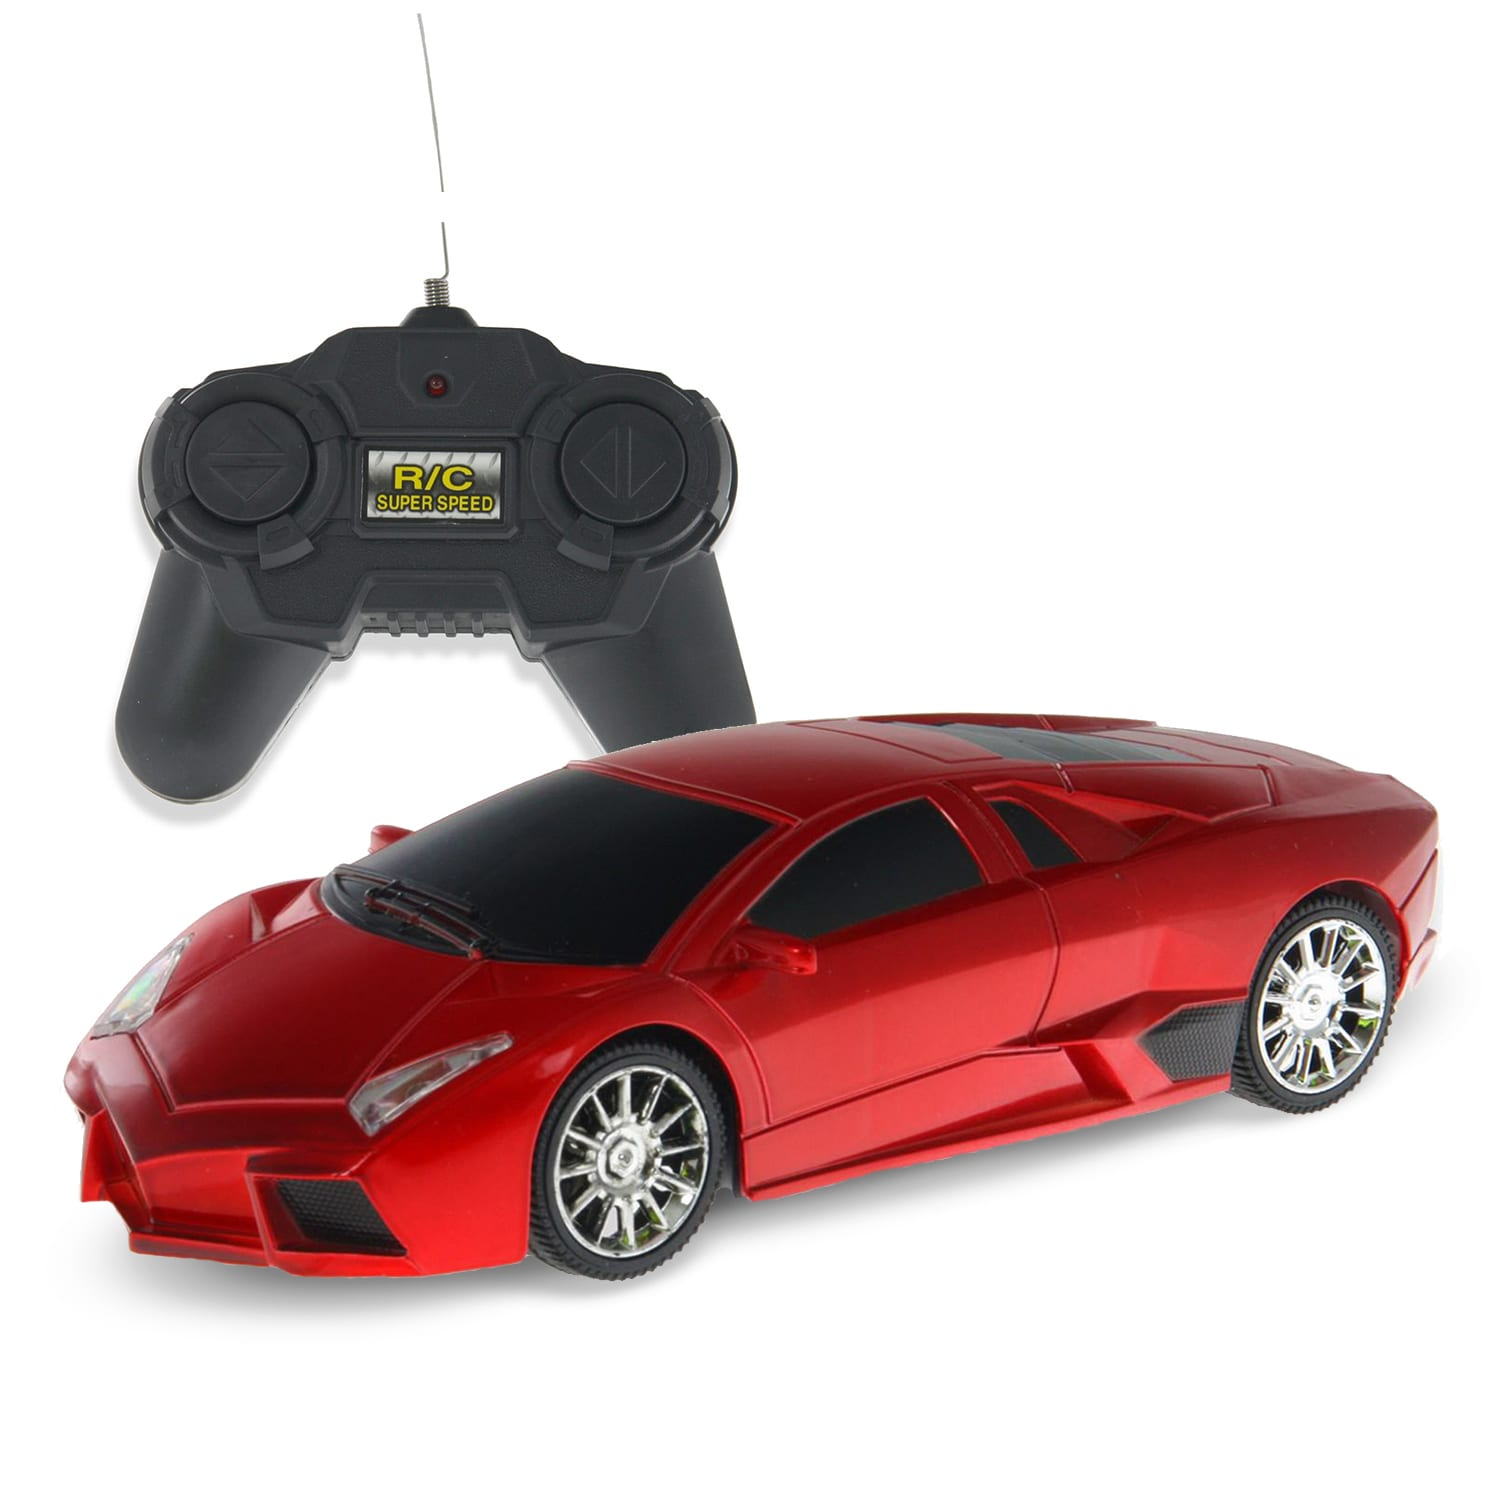 Top 10 Fastest Car In The Word: Fast Car LF08 Red Lambo 1/24 Scale RC Car At Toys R Us